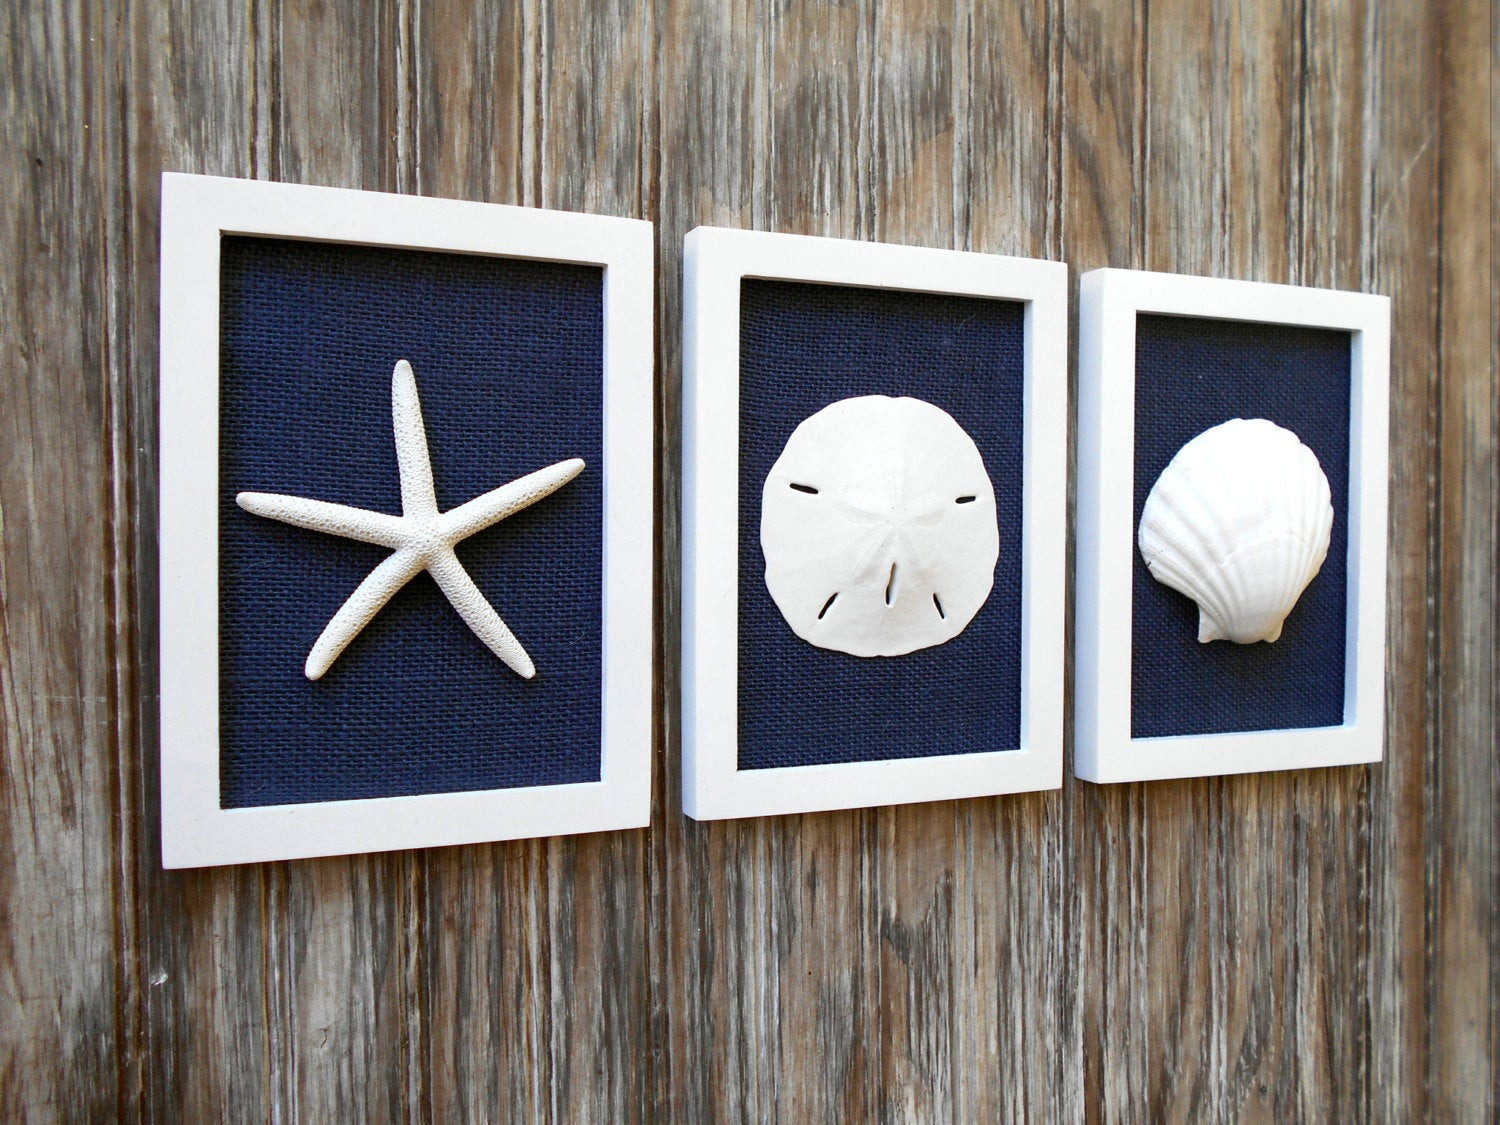 Best ideas about Coastal Wall Art . Save or Pin Cottage Chic Set of Beach Wall Art Beach House Decor Navy Now.